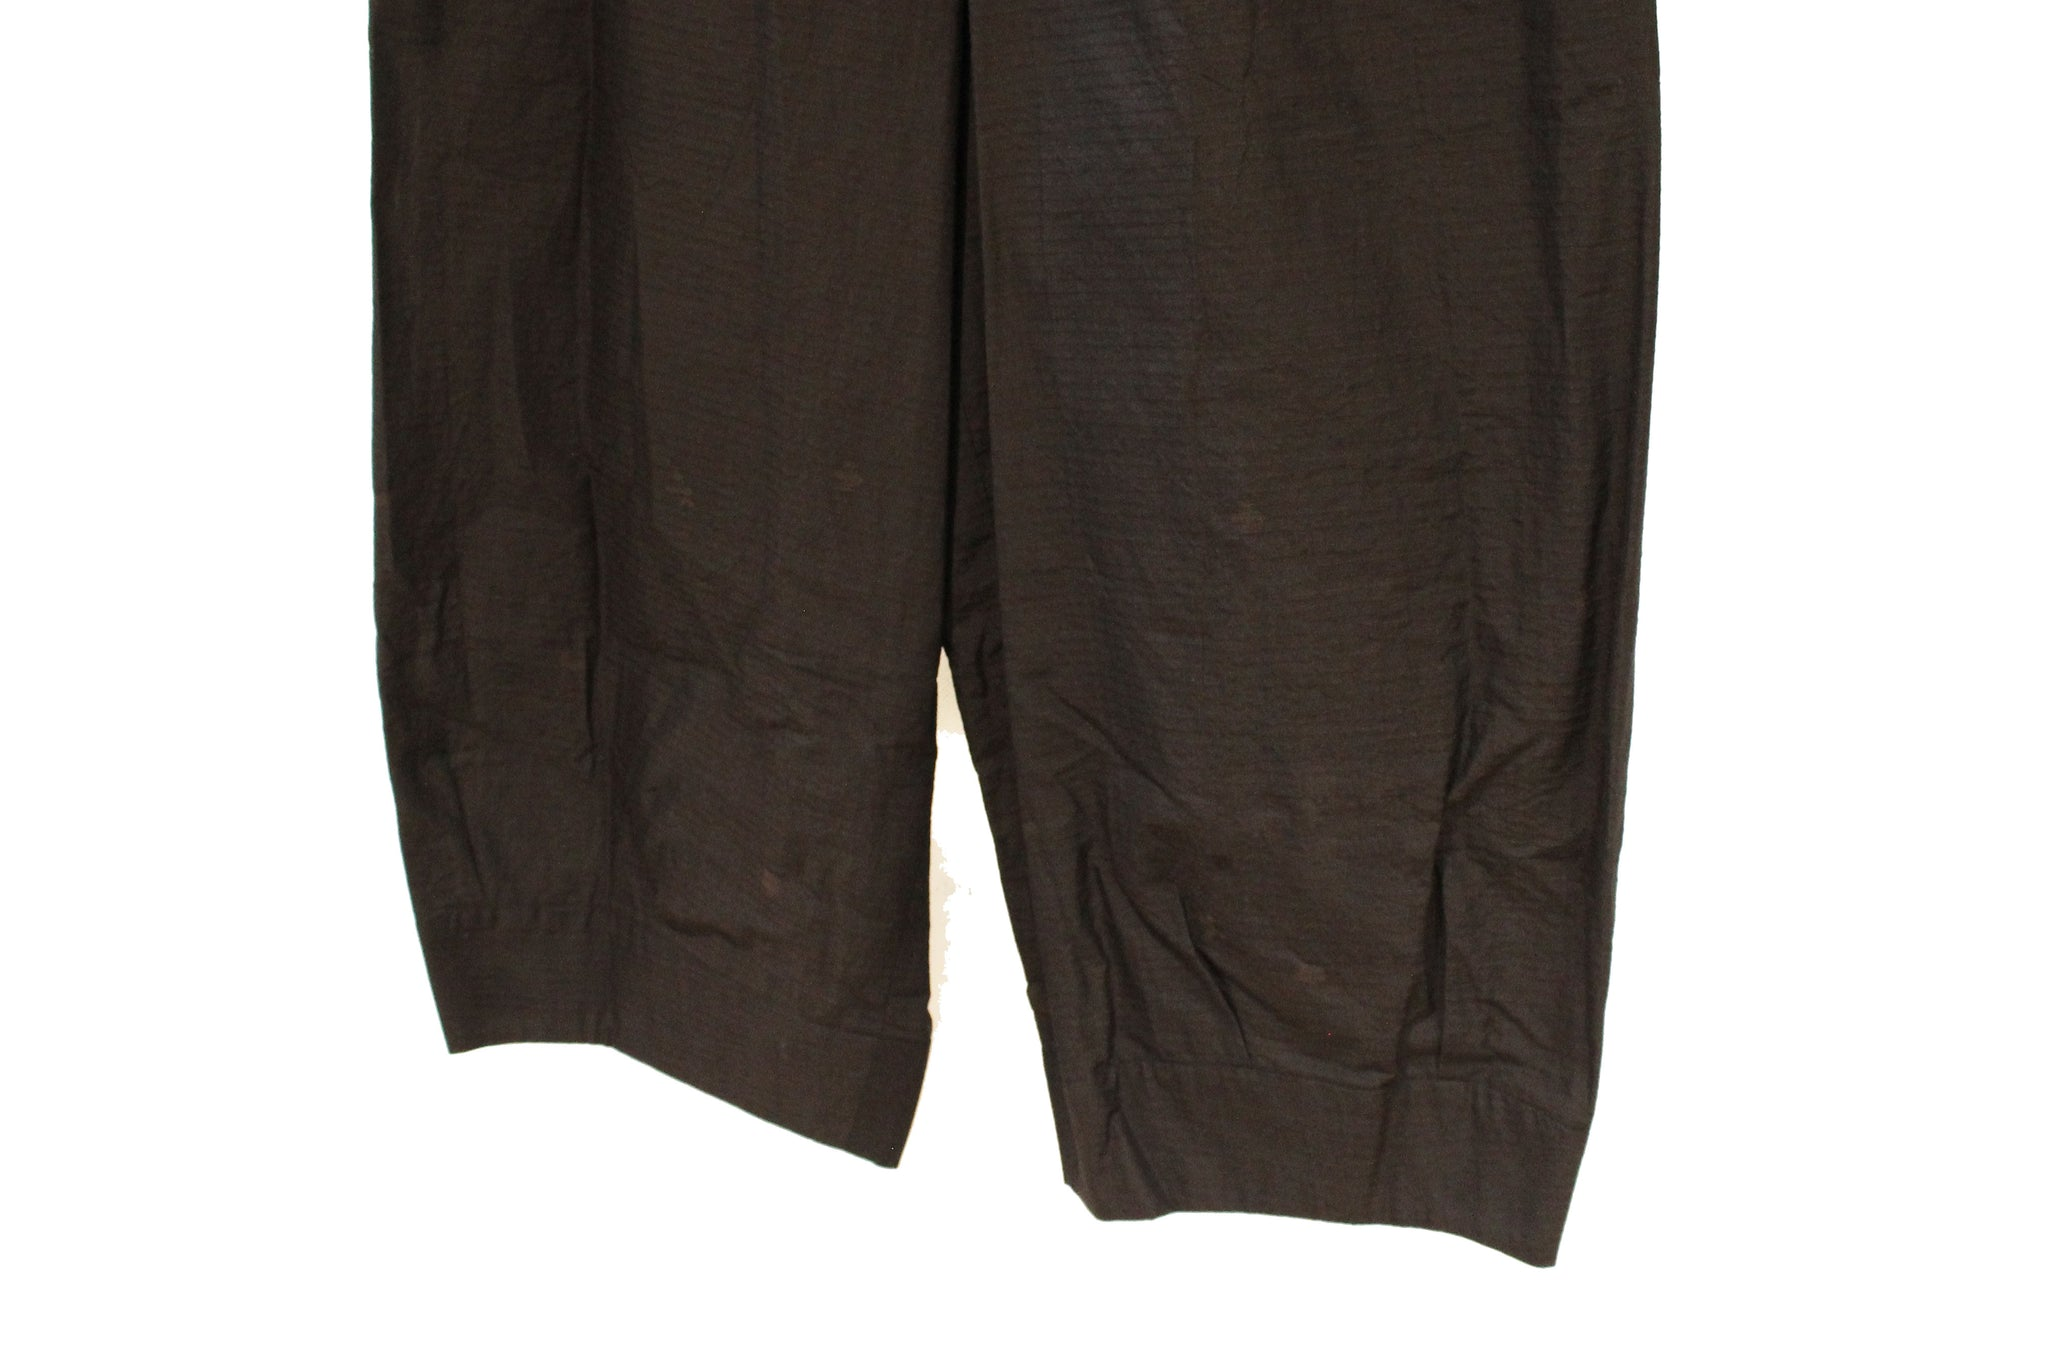 JI-U Dark Brown Textured Trousers